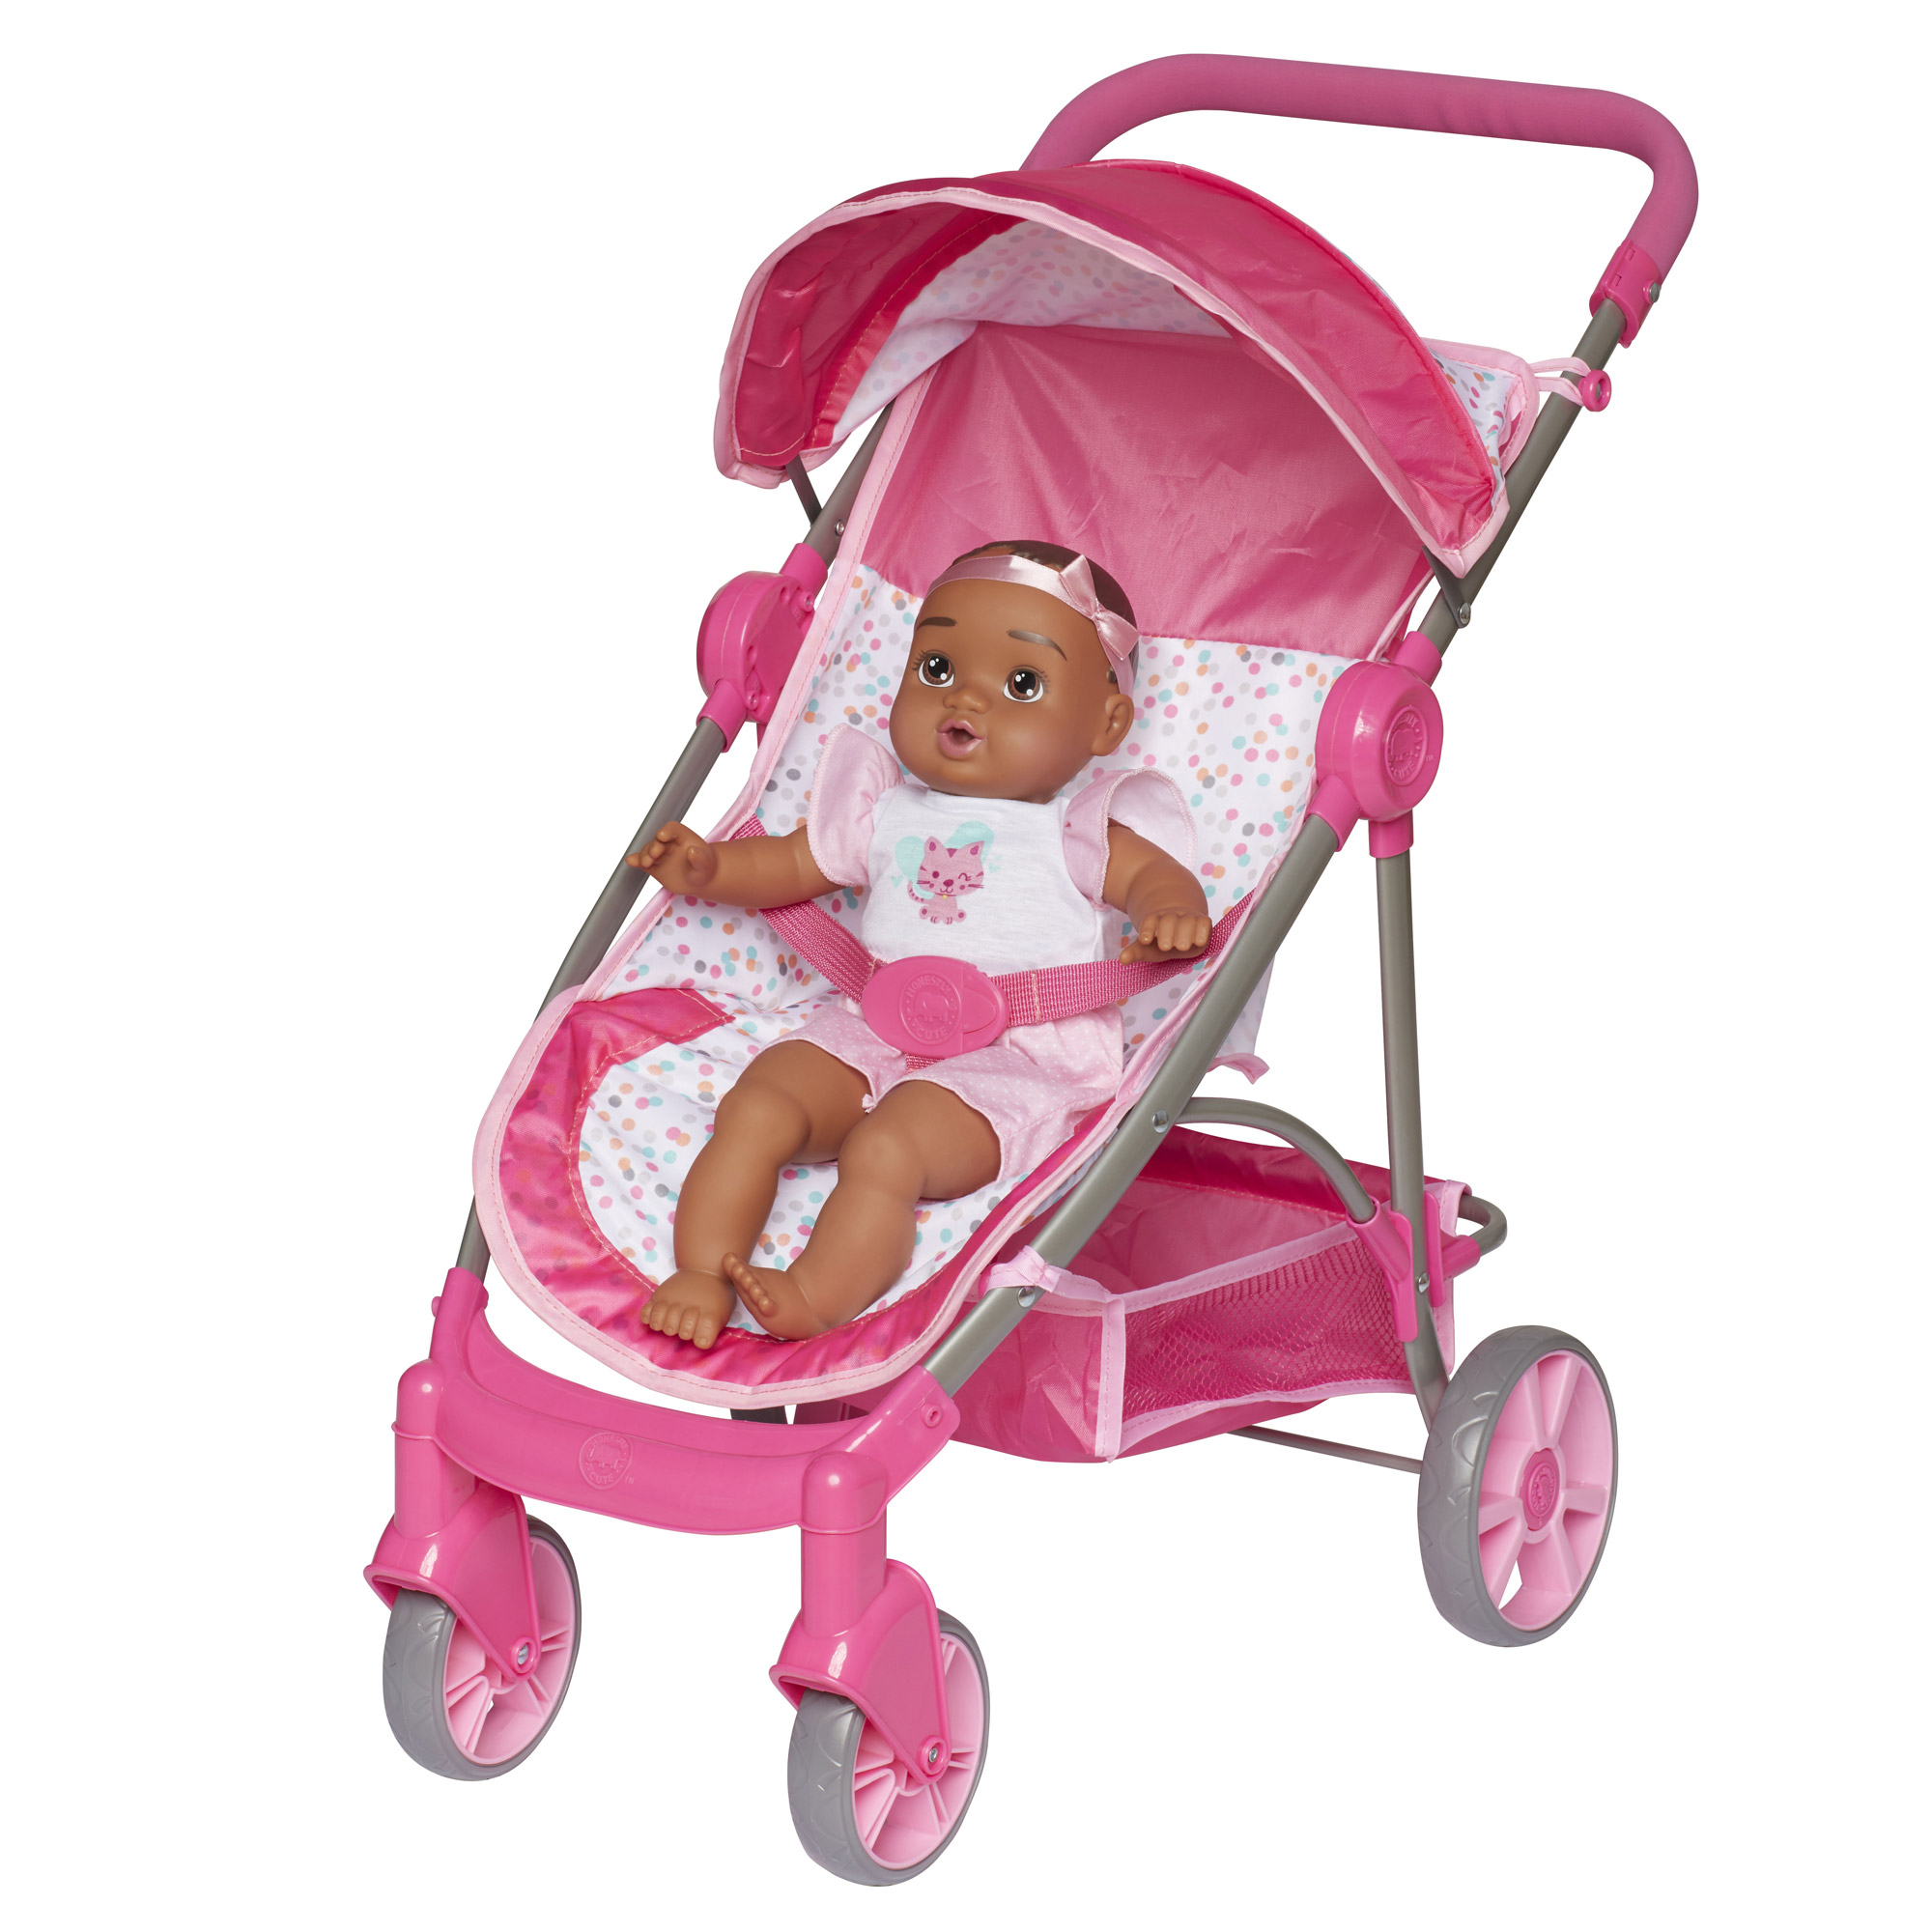 Perfectly Cute Baby Doll Deluxe Stroller